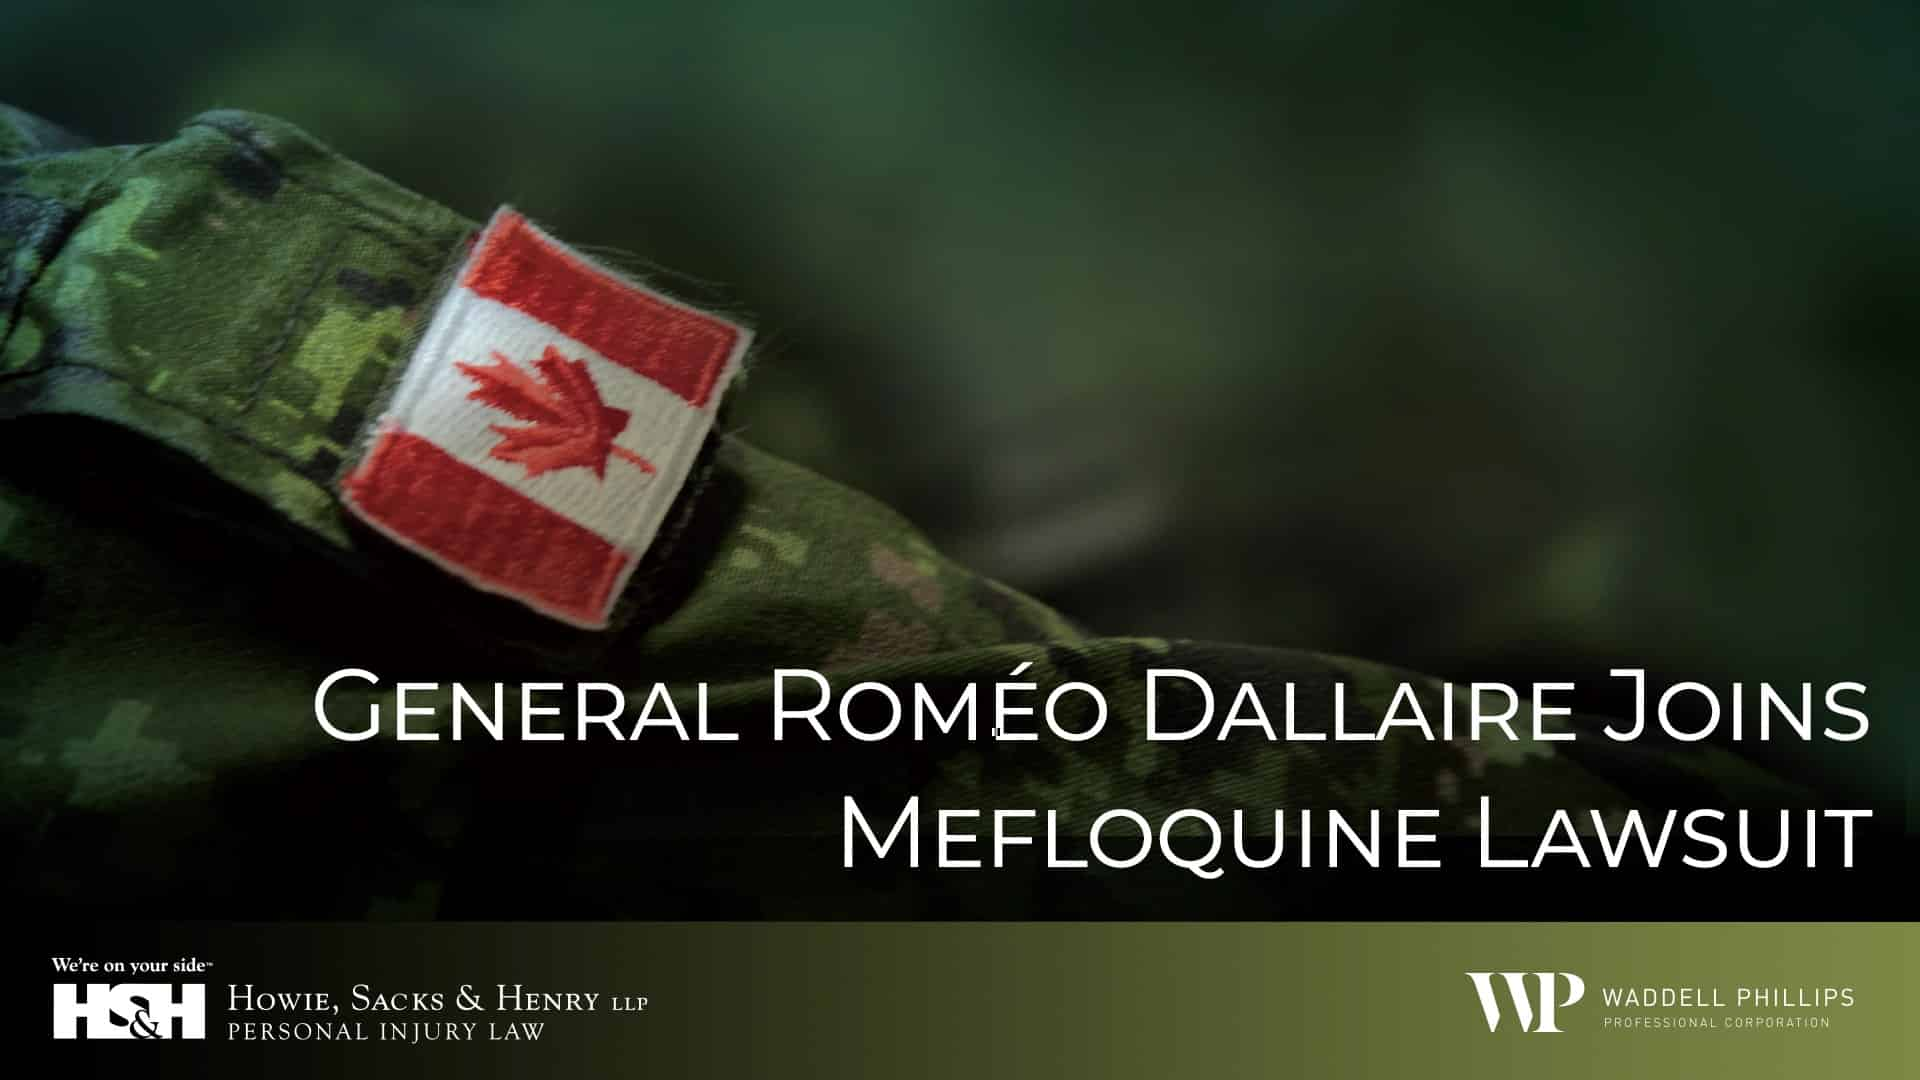 General Roméo Dallaire Joins Mefloquine Lawsuit